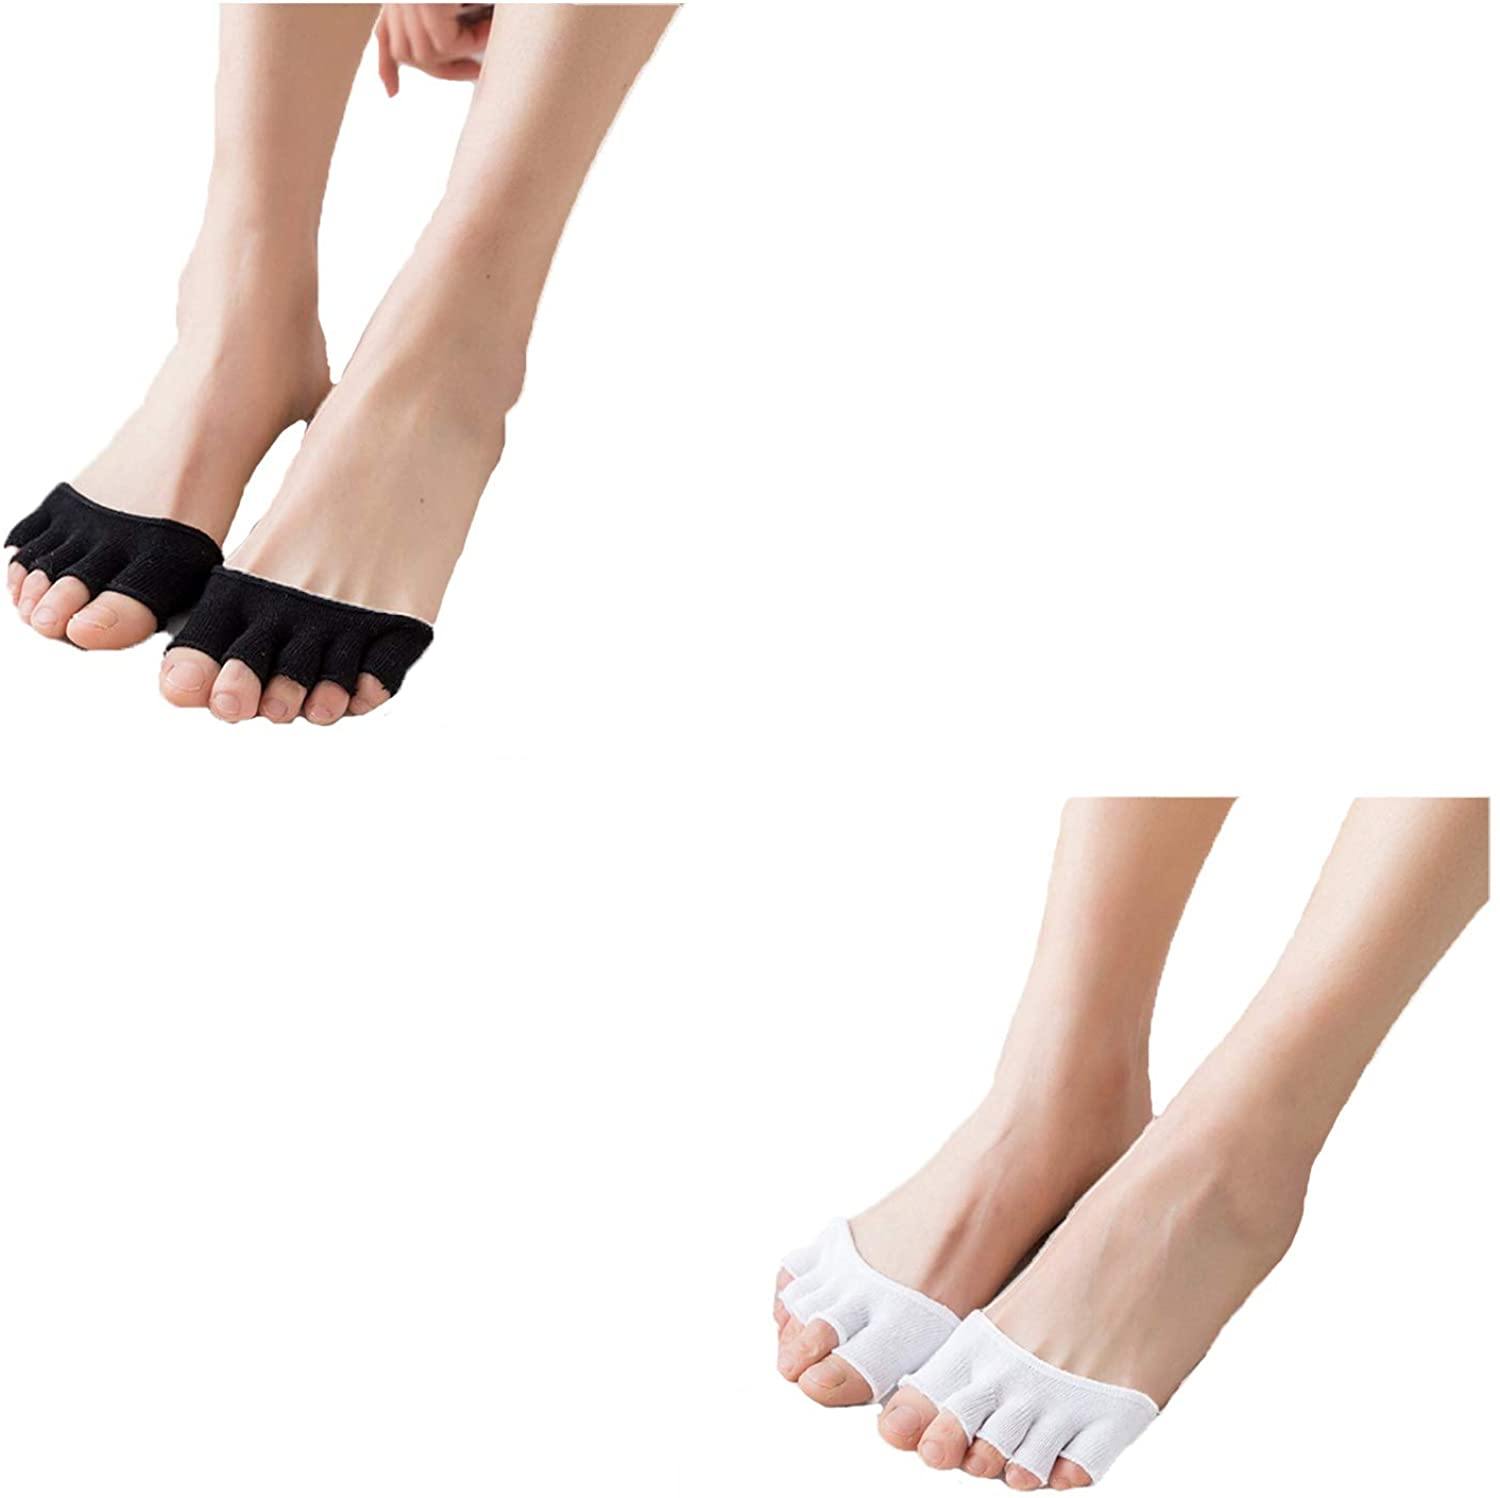 seven wolves Half-Toe Five-Toes Socks Plus Cotton Sweat-Absorbed Forefoot Half Palm-Toe Anti-Skid Stealth Socks,6 Pairs